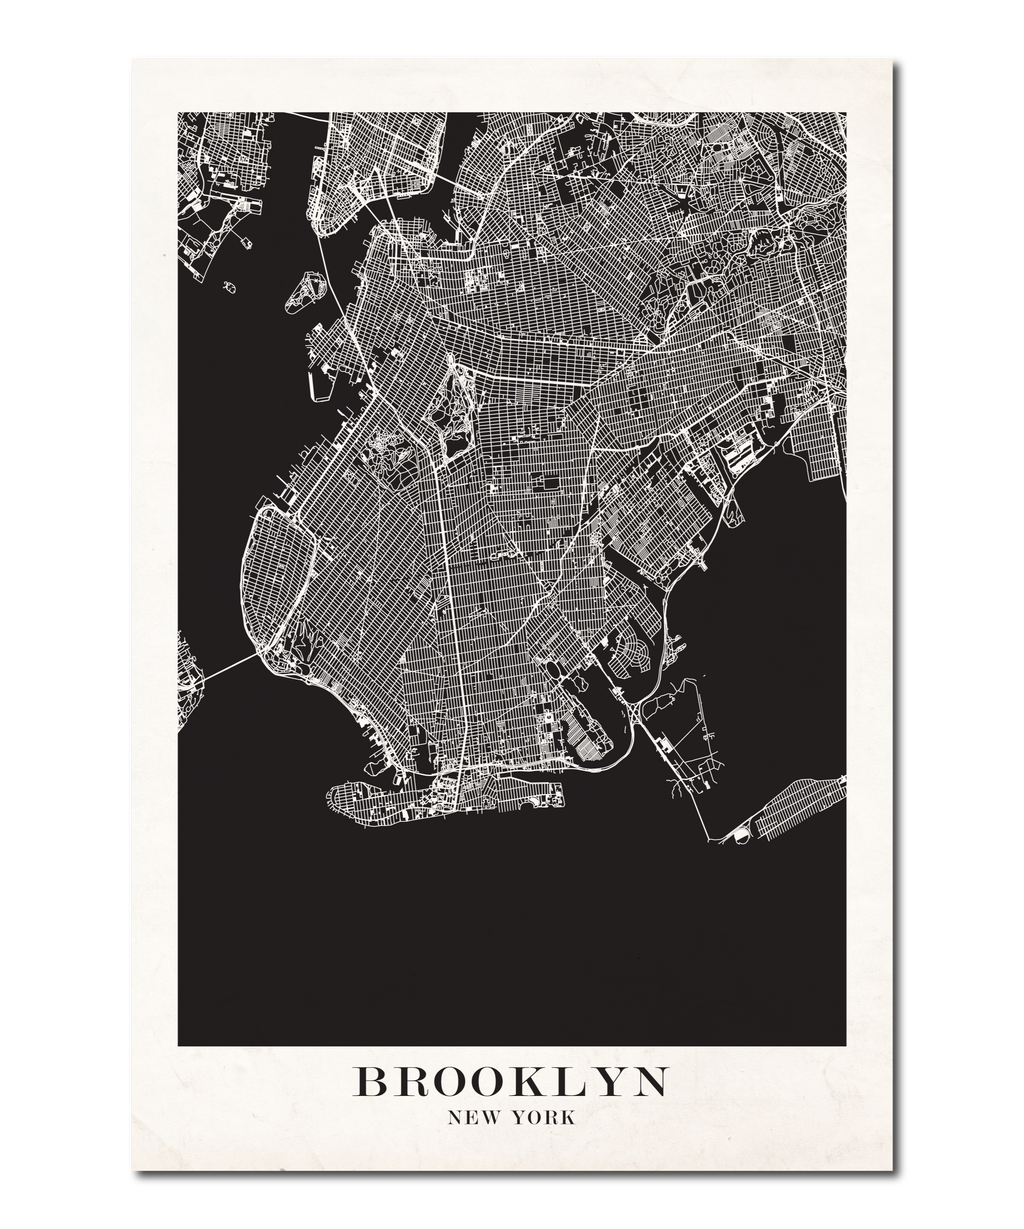 Brooklyn, New York Map Design